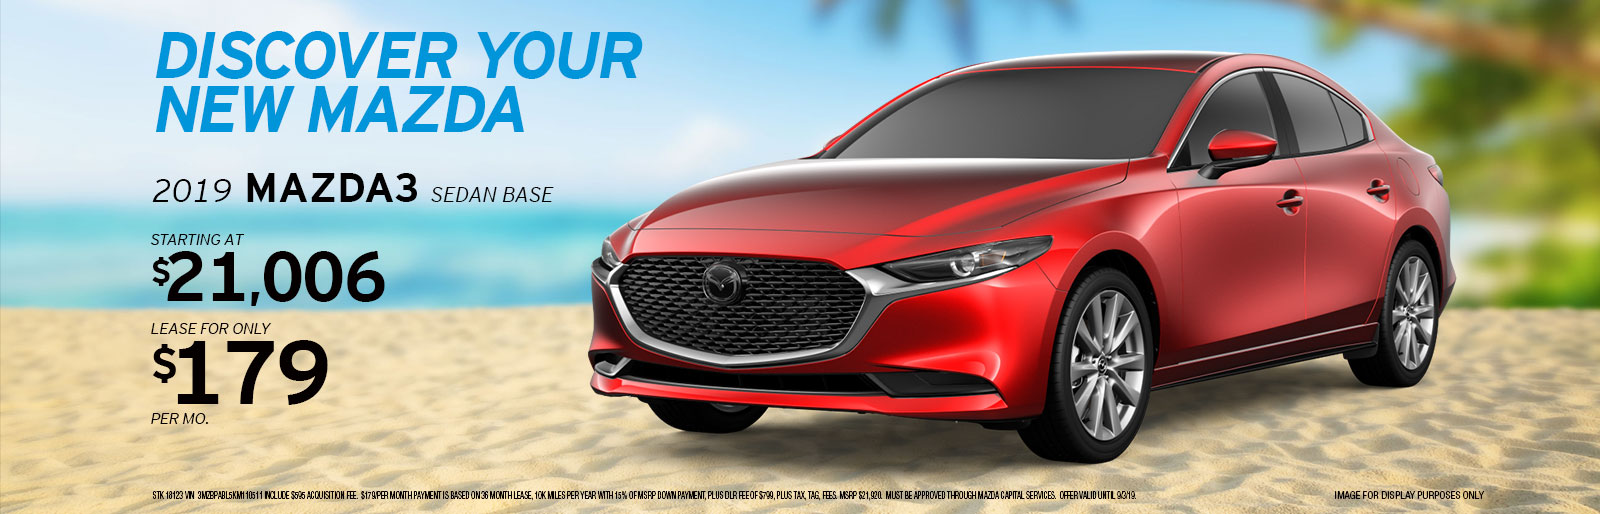 Sandy Sansing Used Cars >> Sandy Sansing Mazda New Mazda Dealership In Pensacola Fl